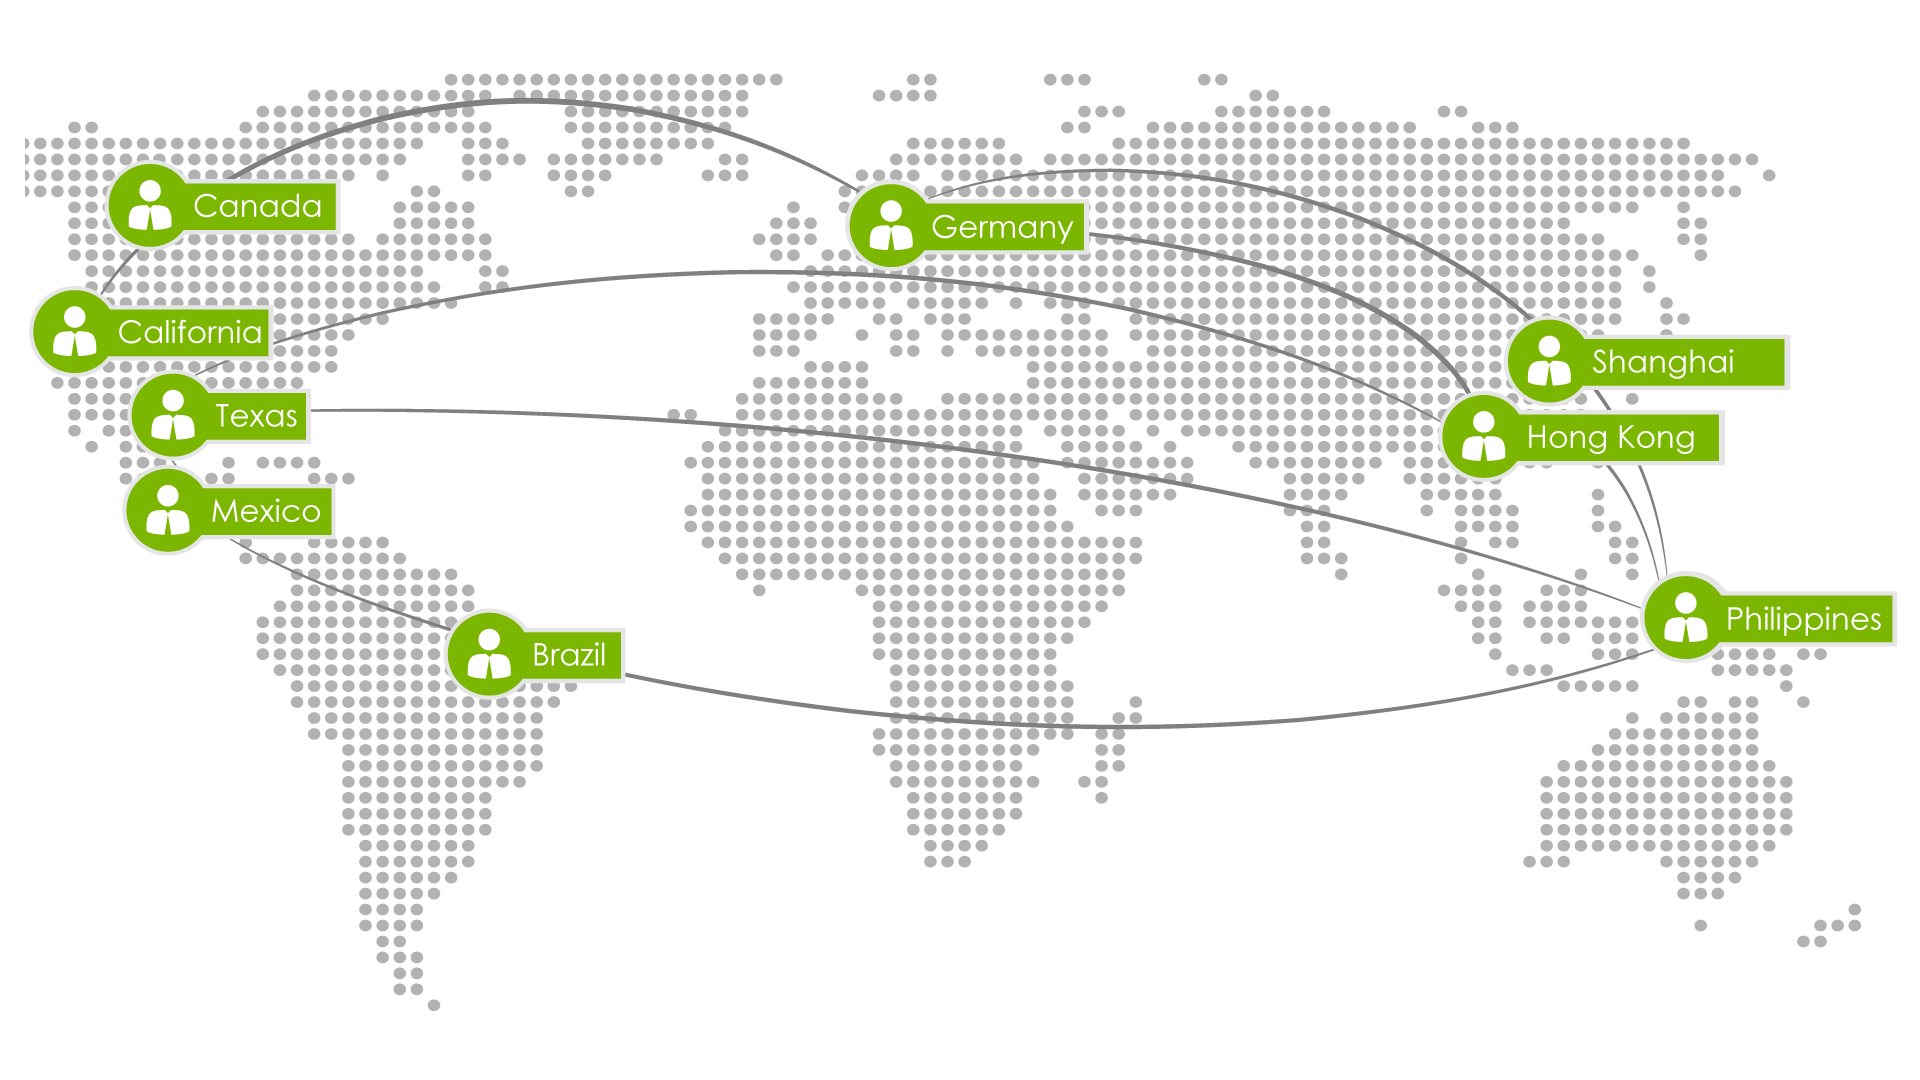 Worldwide Network of Suppliers Image